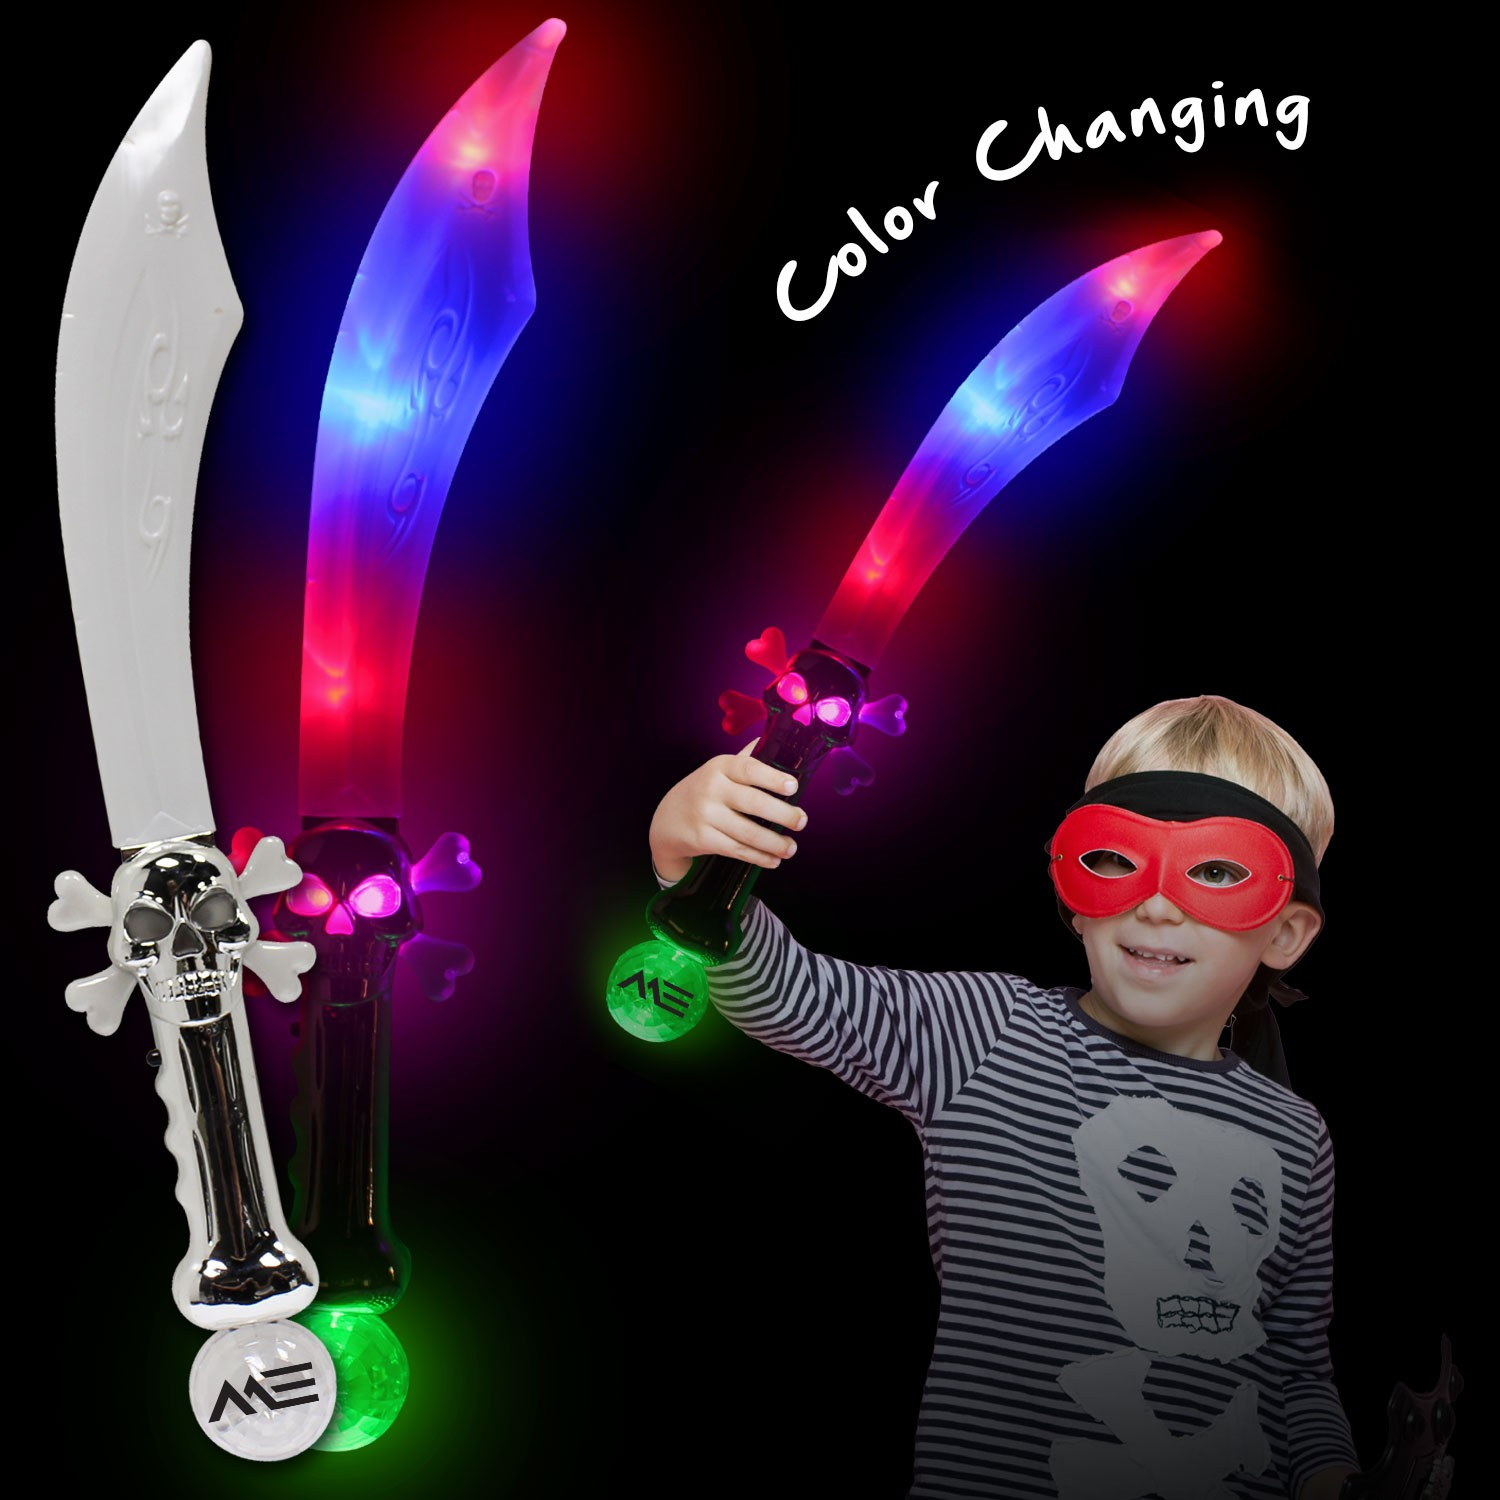 led pirate sword with flashing color lights 23 inch light up